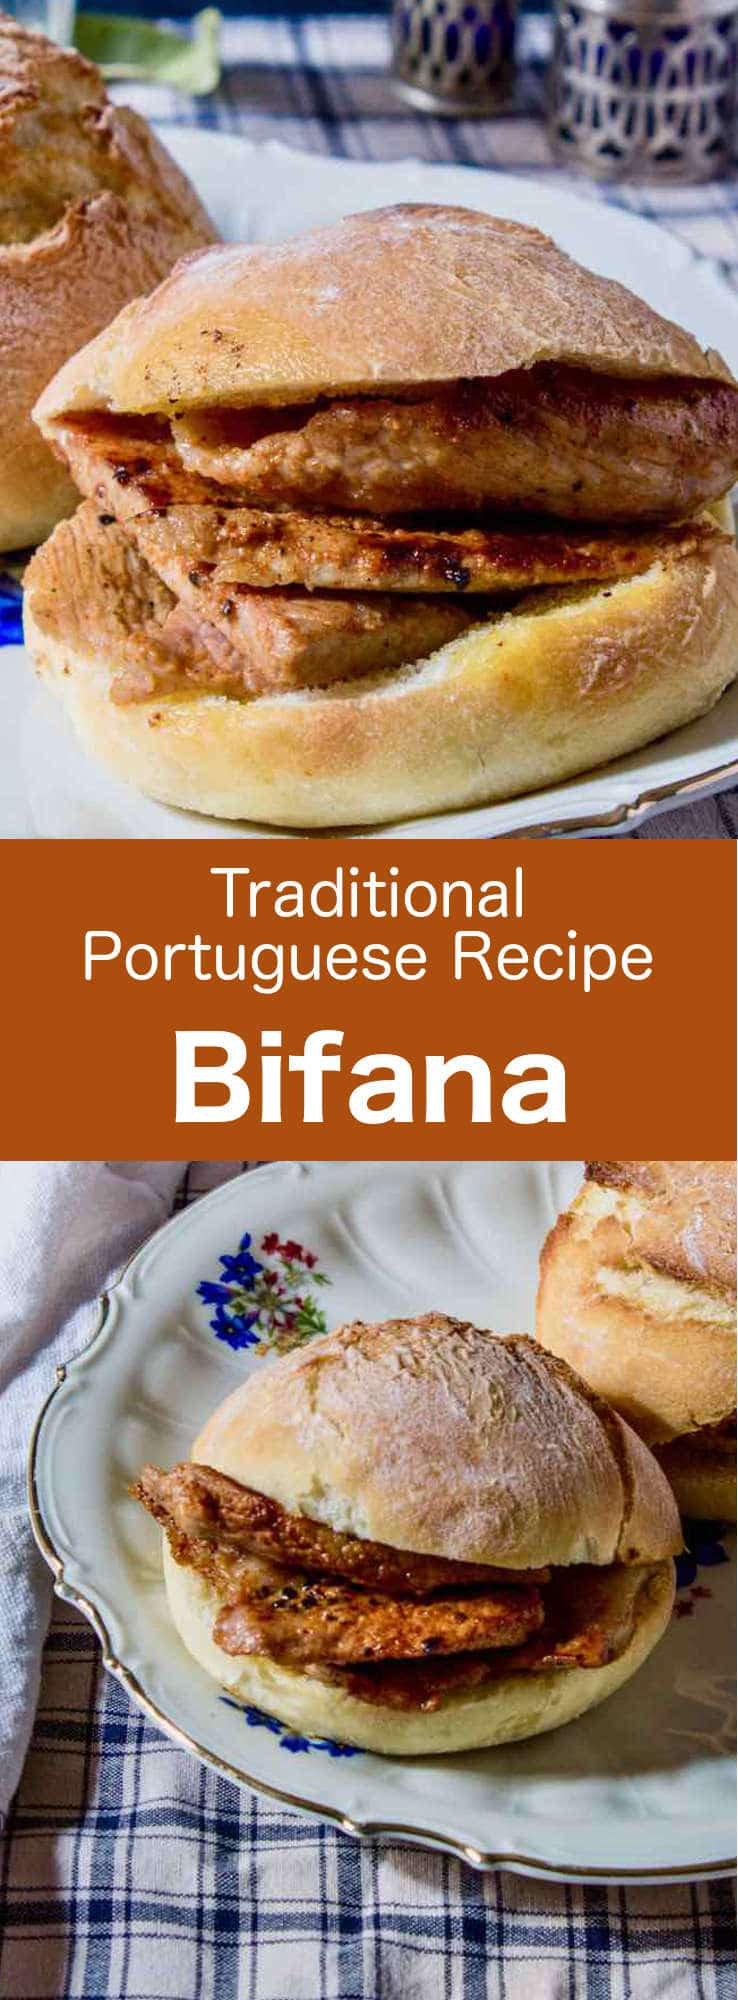 Bifana is a delicious small traditional Portuguese sandwich. It is prepared with papo seco (Portuguese bread roll) and marinated pork cutlets, on which the cooking juices are drizzled. #Portugal #PortugueseRecipe #WorldCuisine #196flavors